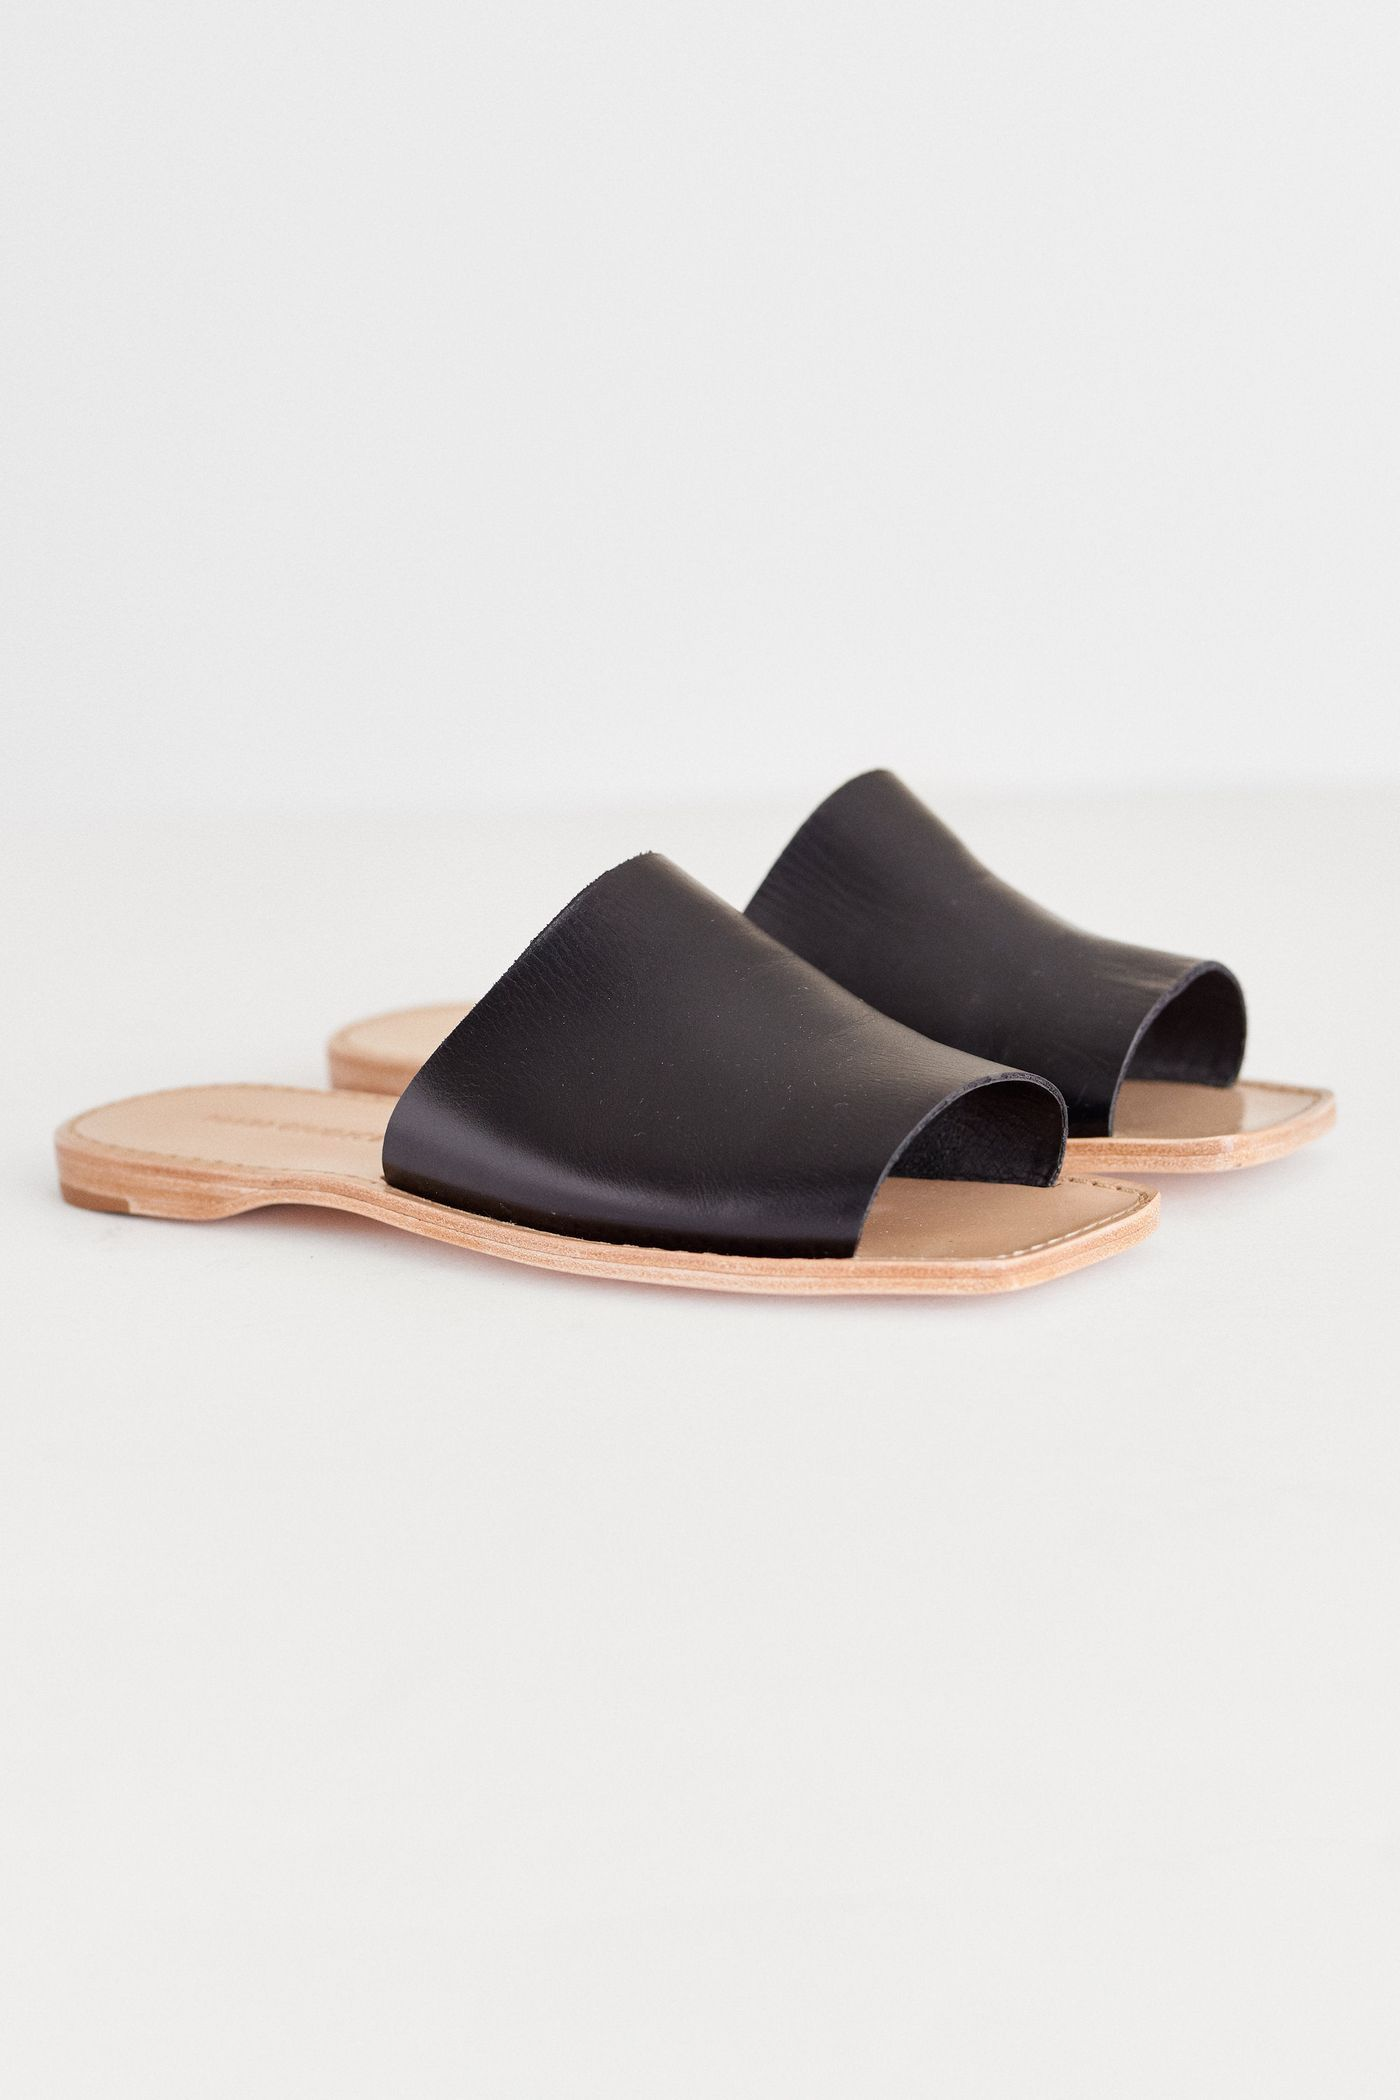 A simple slide to slip on during warmer days. The Mari